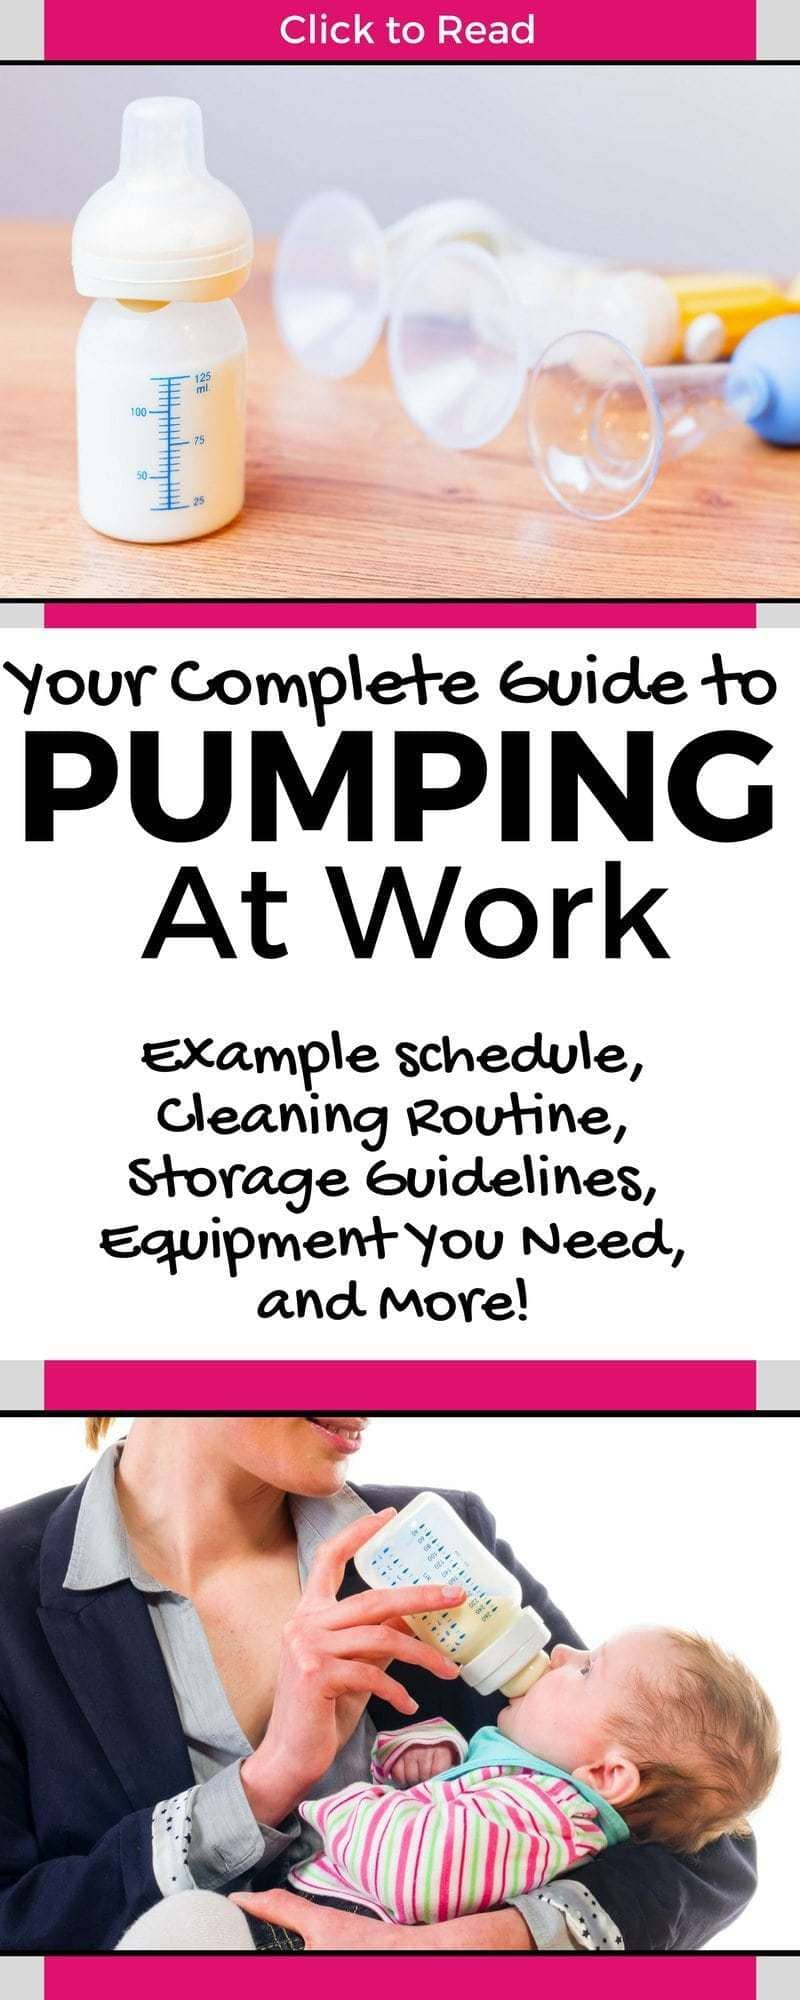 Going back to work soon? Read this post to learn how to pump at work! You'll get a pumping schedule, pumping at work hacks, pumping at work checklists and more! || pump at work tips, pumping at work tips; pumping at work guide, pumping at work tips, pumping at work storage || #pumping #breastfeeding #breastfeedingatwork #pumpingatwork #pumpingtips #pumpingguide #pumpinghacks